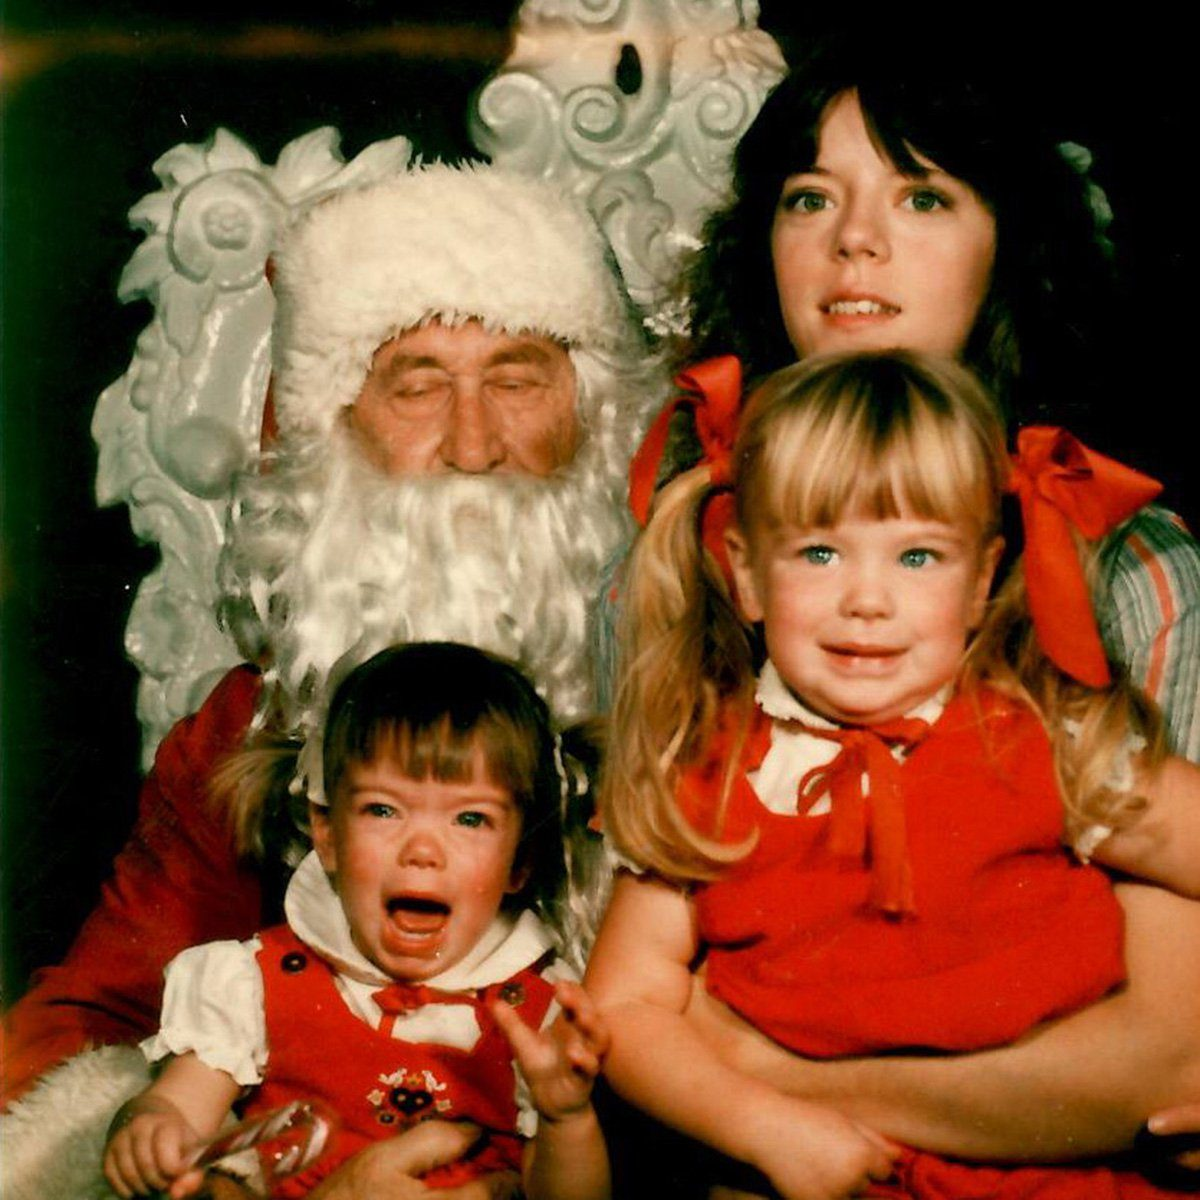 Mother and her two kids posing next to Santa